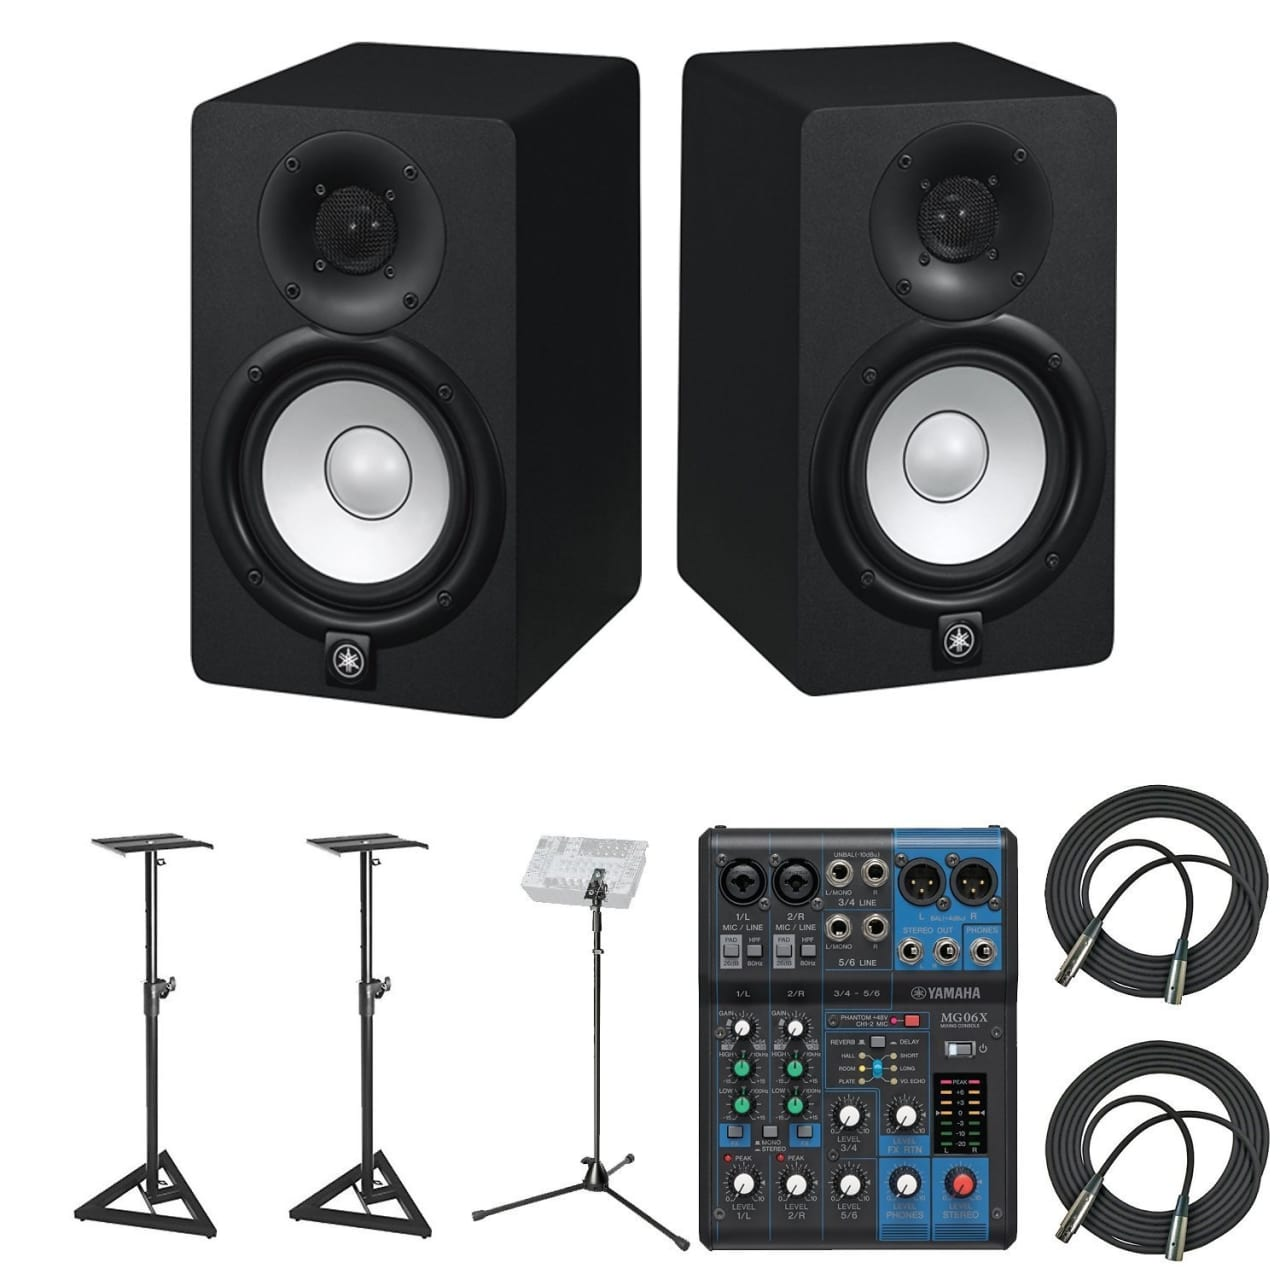 Yamaha hs5 powered studio audio monitor 2 pack with 25 for Yamaha hs5 speaker stands